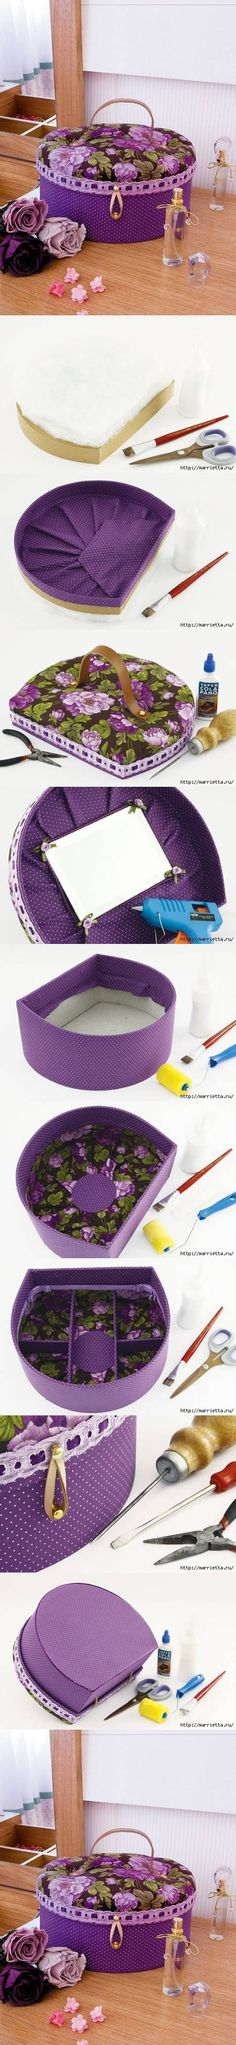 DIY Cute Makeup Box DIY Projects | UsefulDIY.com Follow Us on Facebook ==> http://www.facebook.com/UsefulDiy